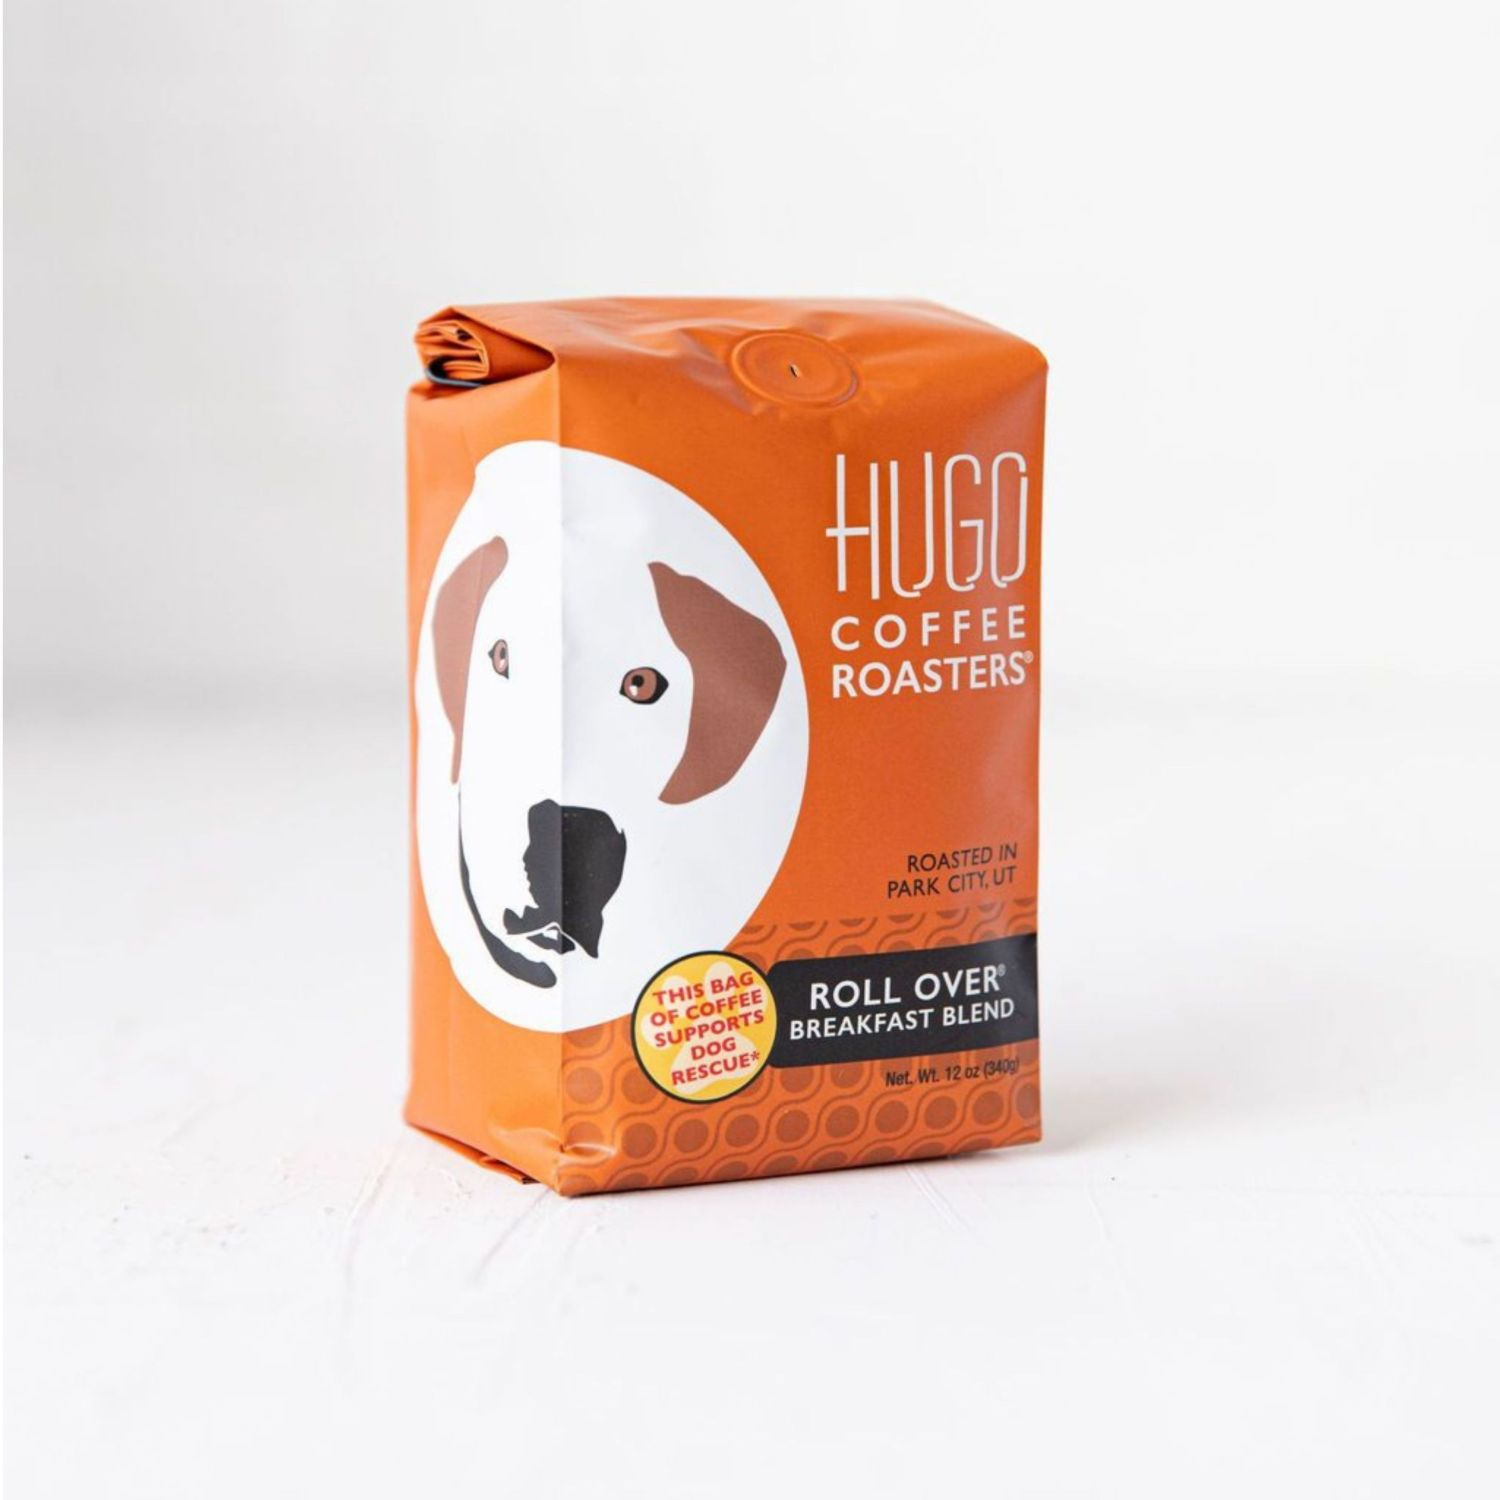 product photo of the roll over breakfast blend by hugo coffee